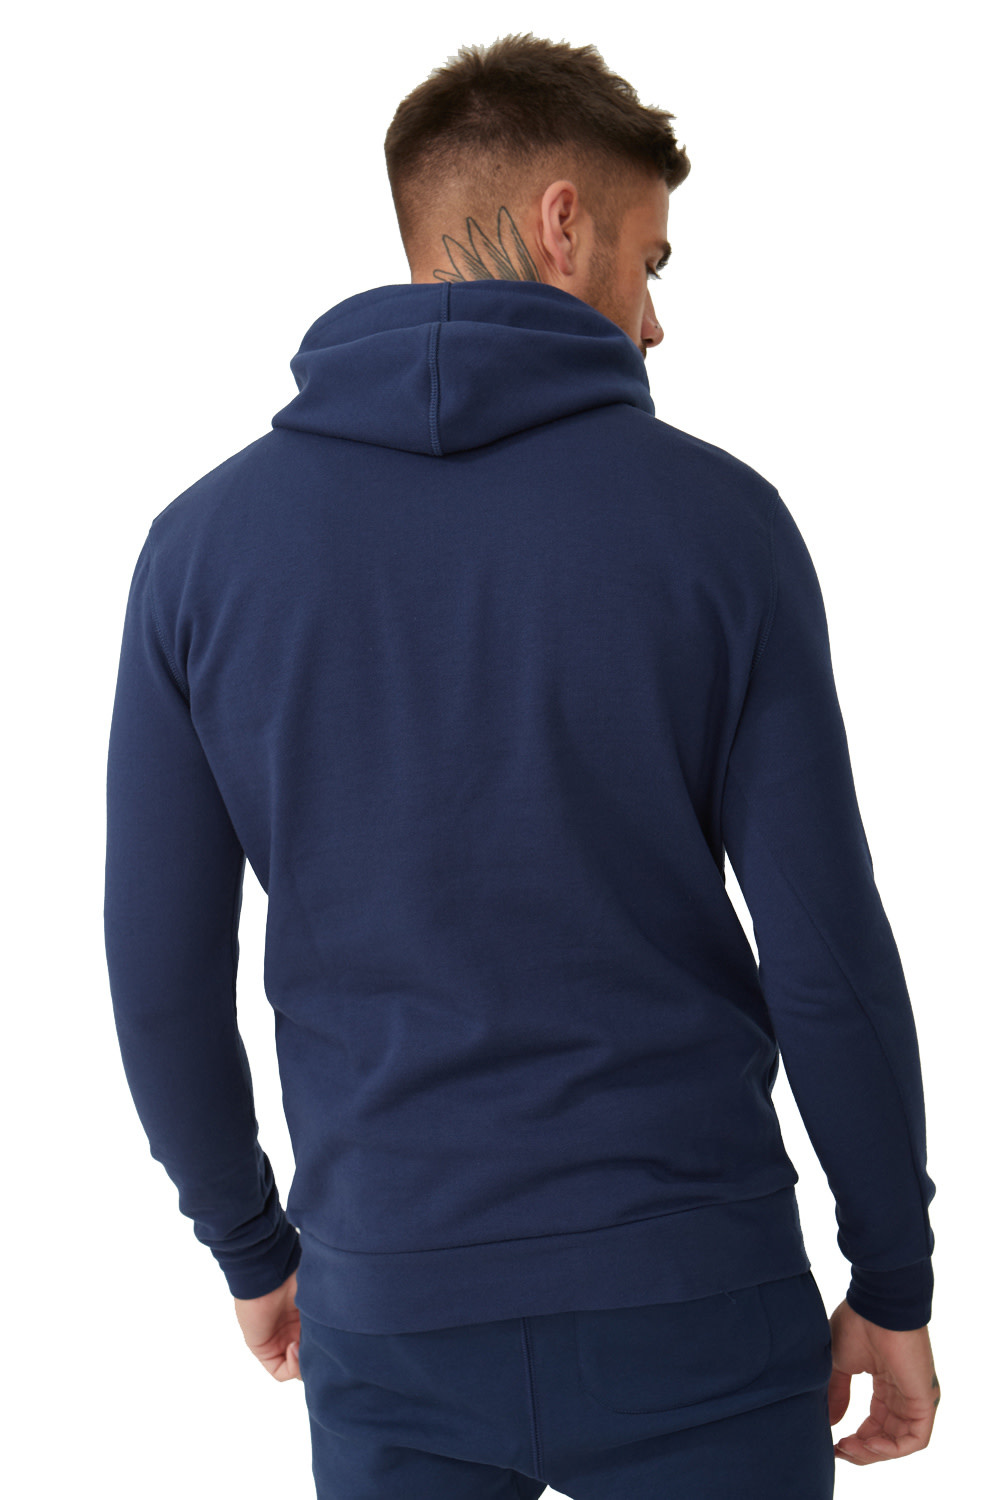 11 Degrees 11 Degrees Core Pullover Hoodie Navy